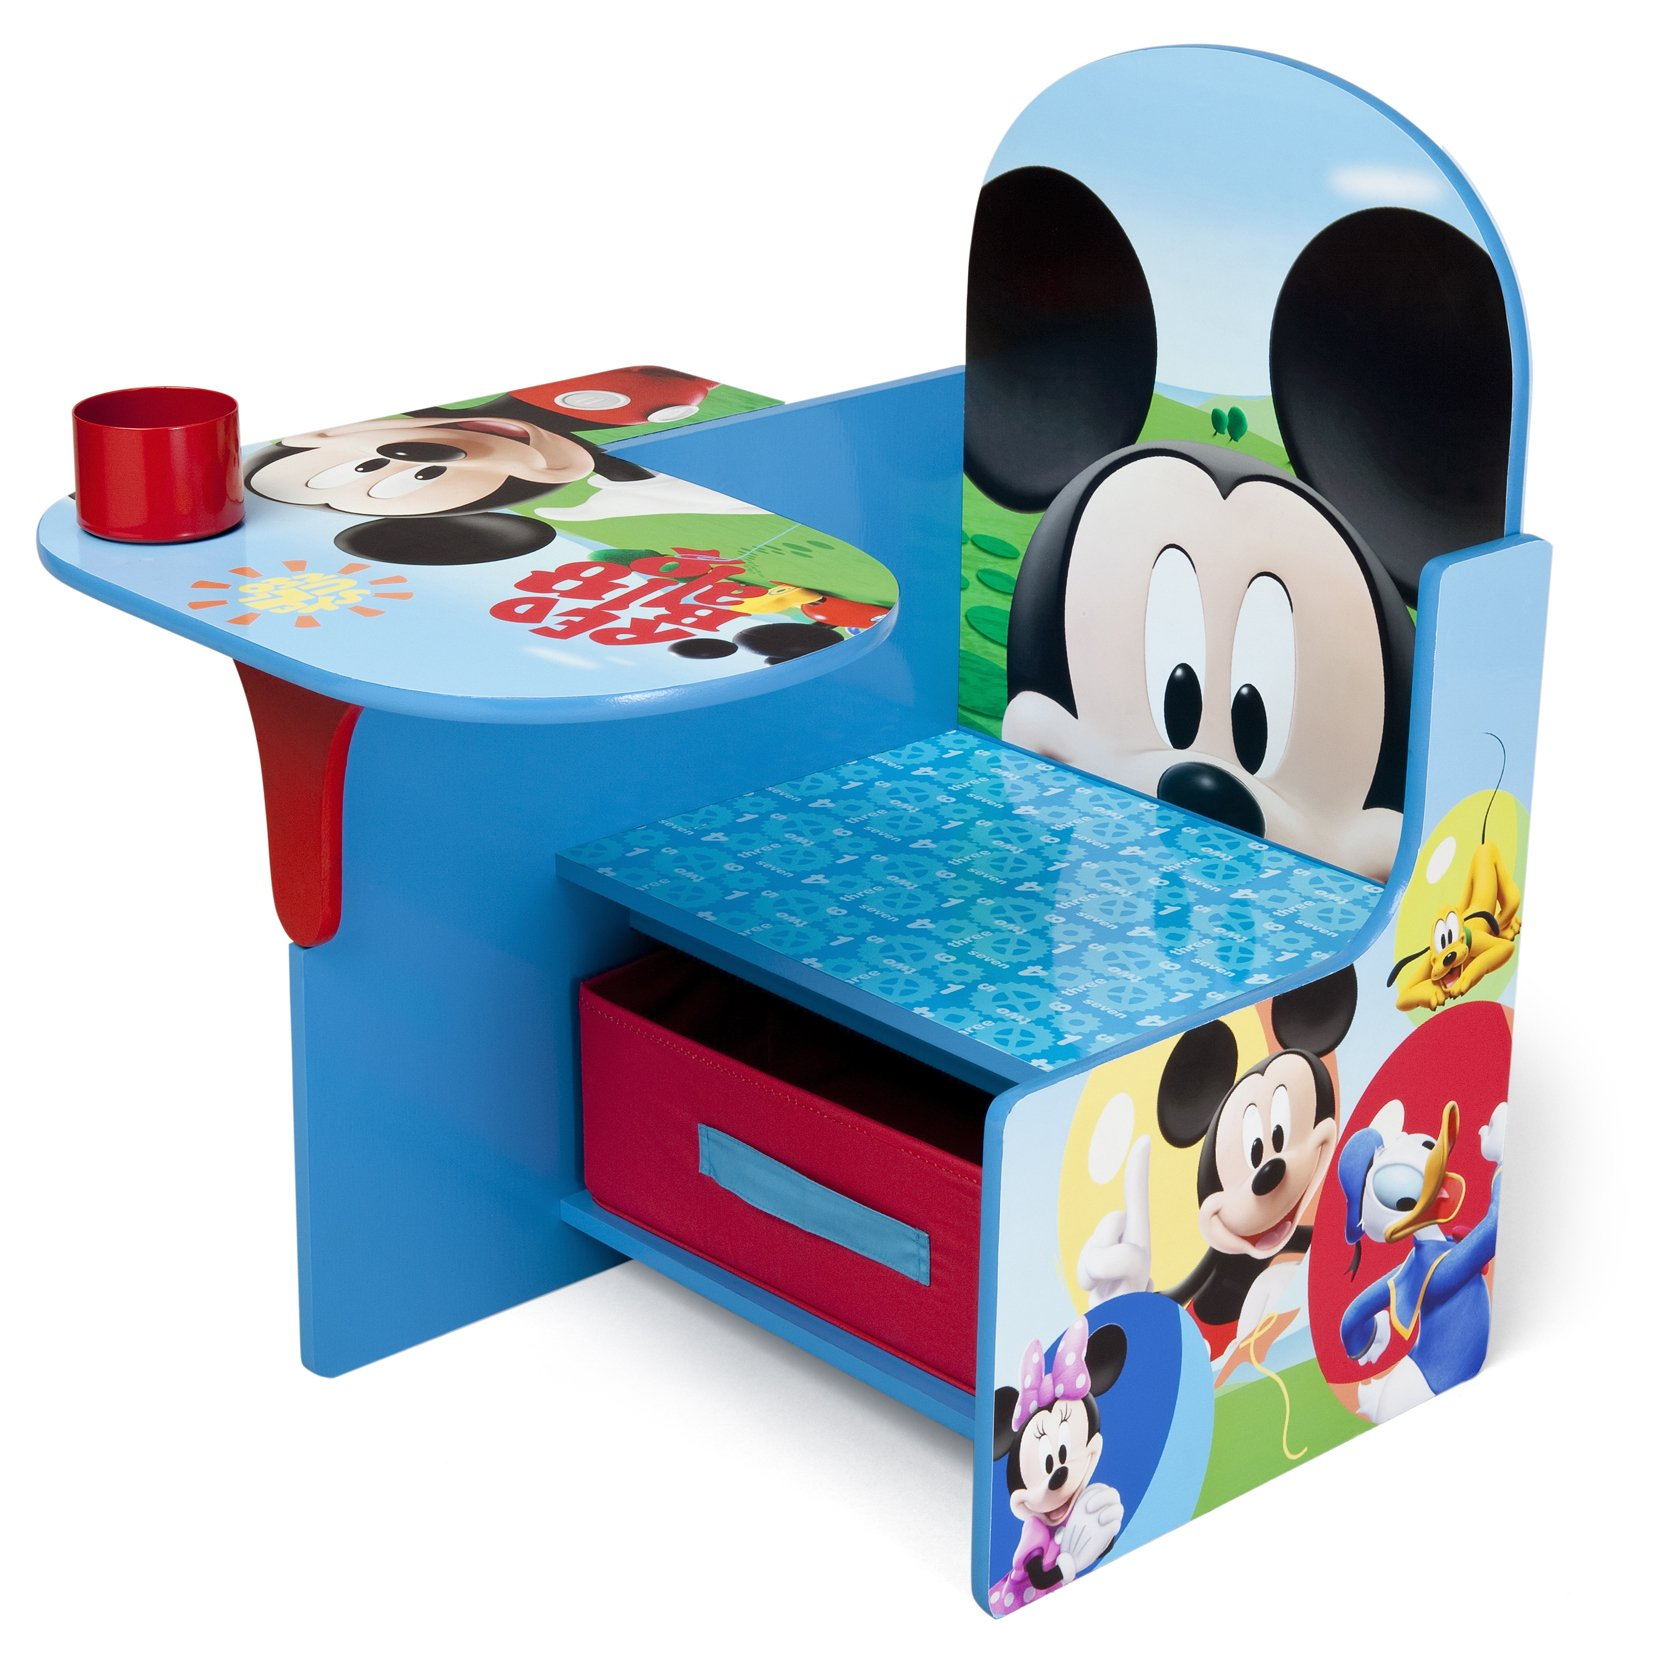 Disney Chair Desk with Storage Bin, Mickey Mouse by Delta Children